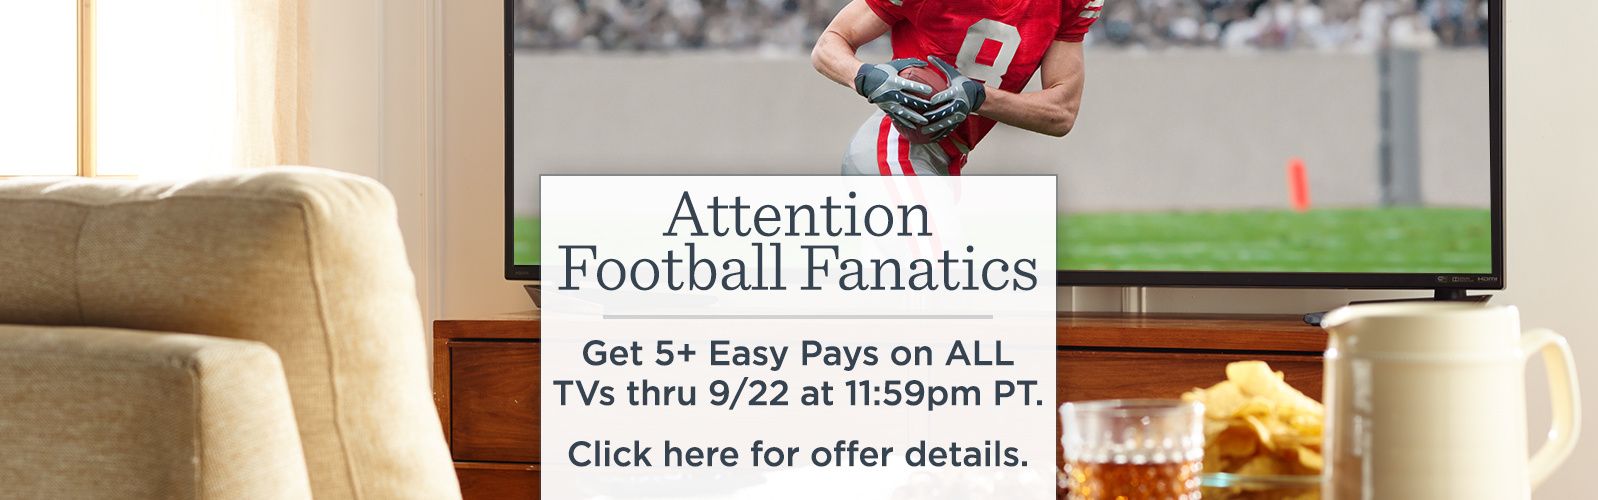 Attention Football Fanatics - Get 5+ Easy Pays on ALL TVs thru 9/22 at 11:59pm PT.  Click here for offer details.